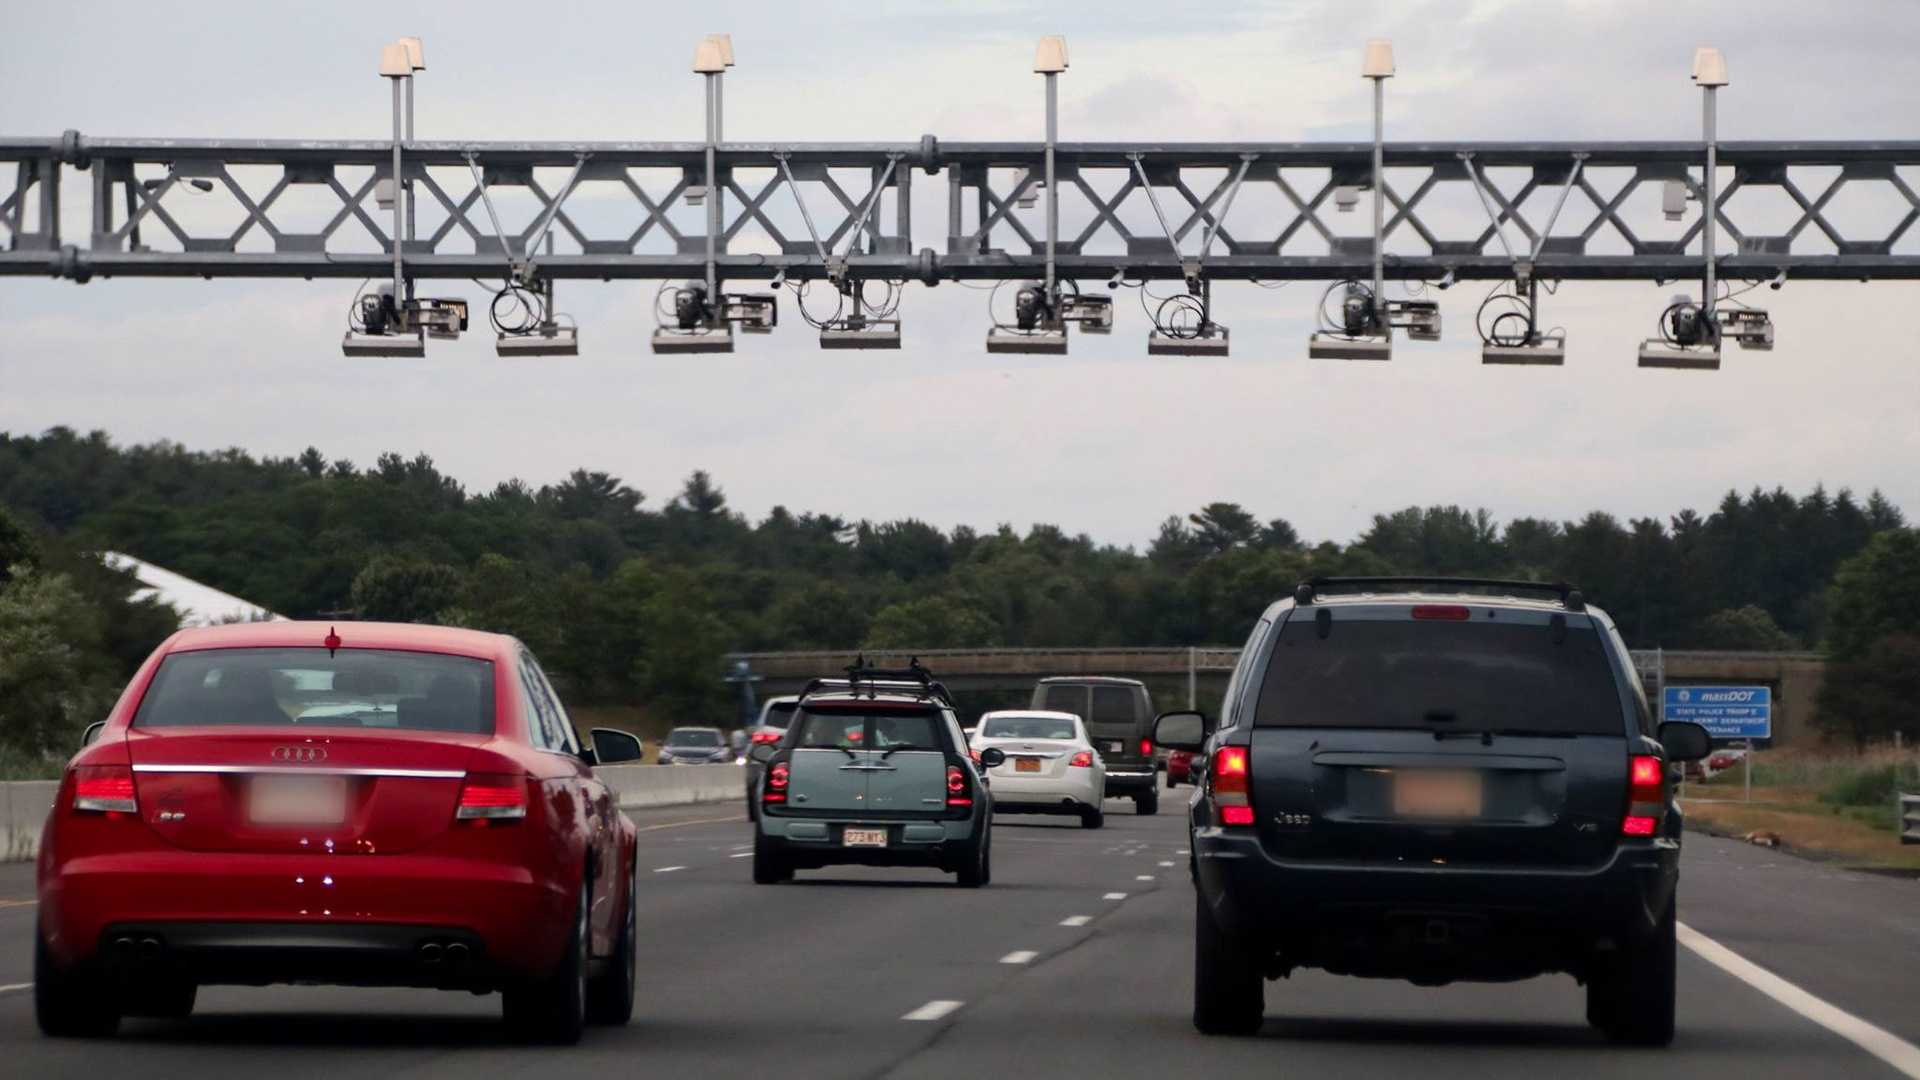 No EZPass  Expect to pay much more on MassPike soon Advertisement